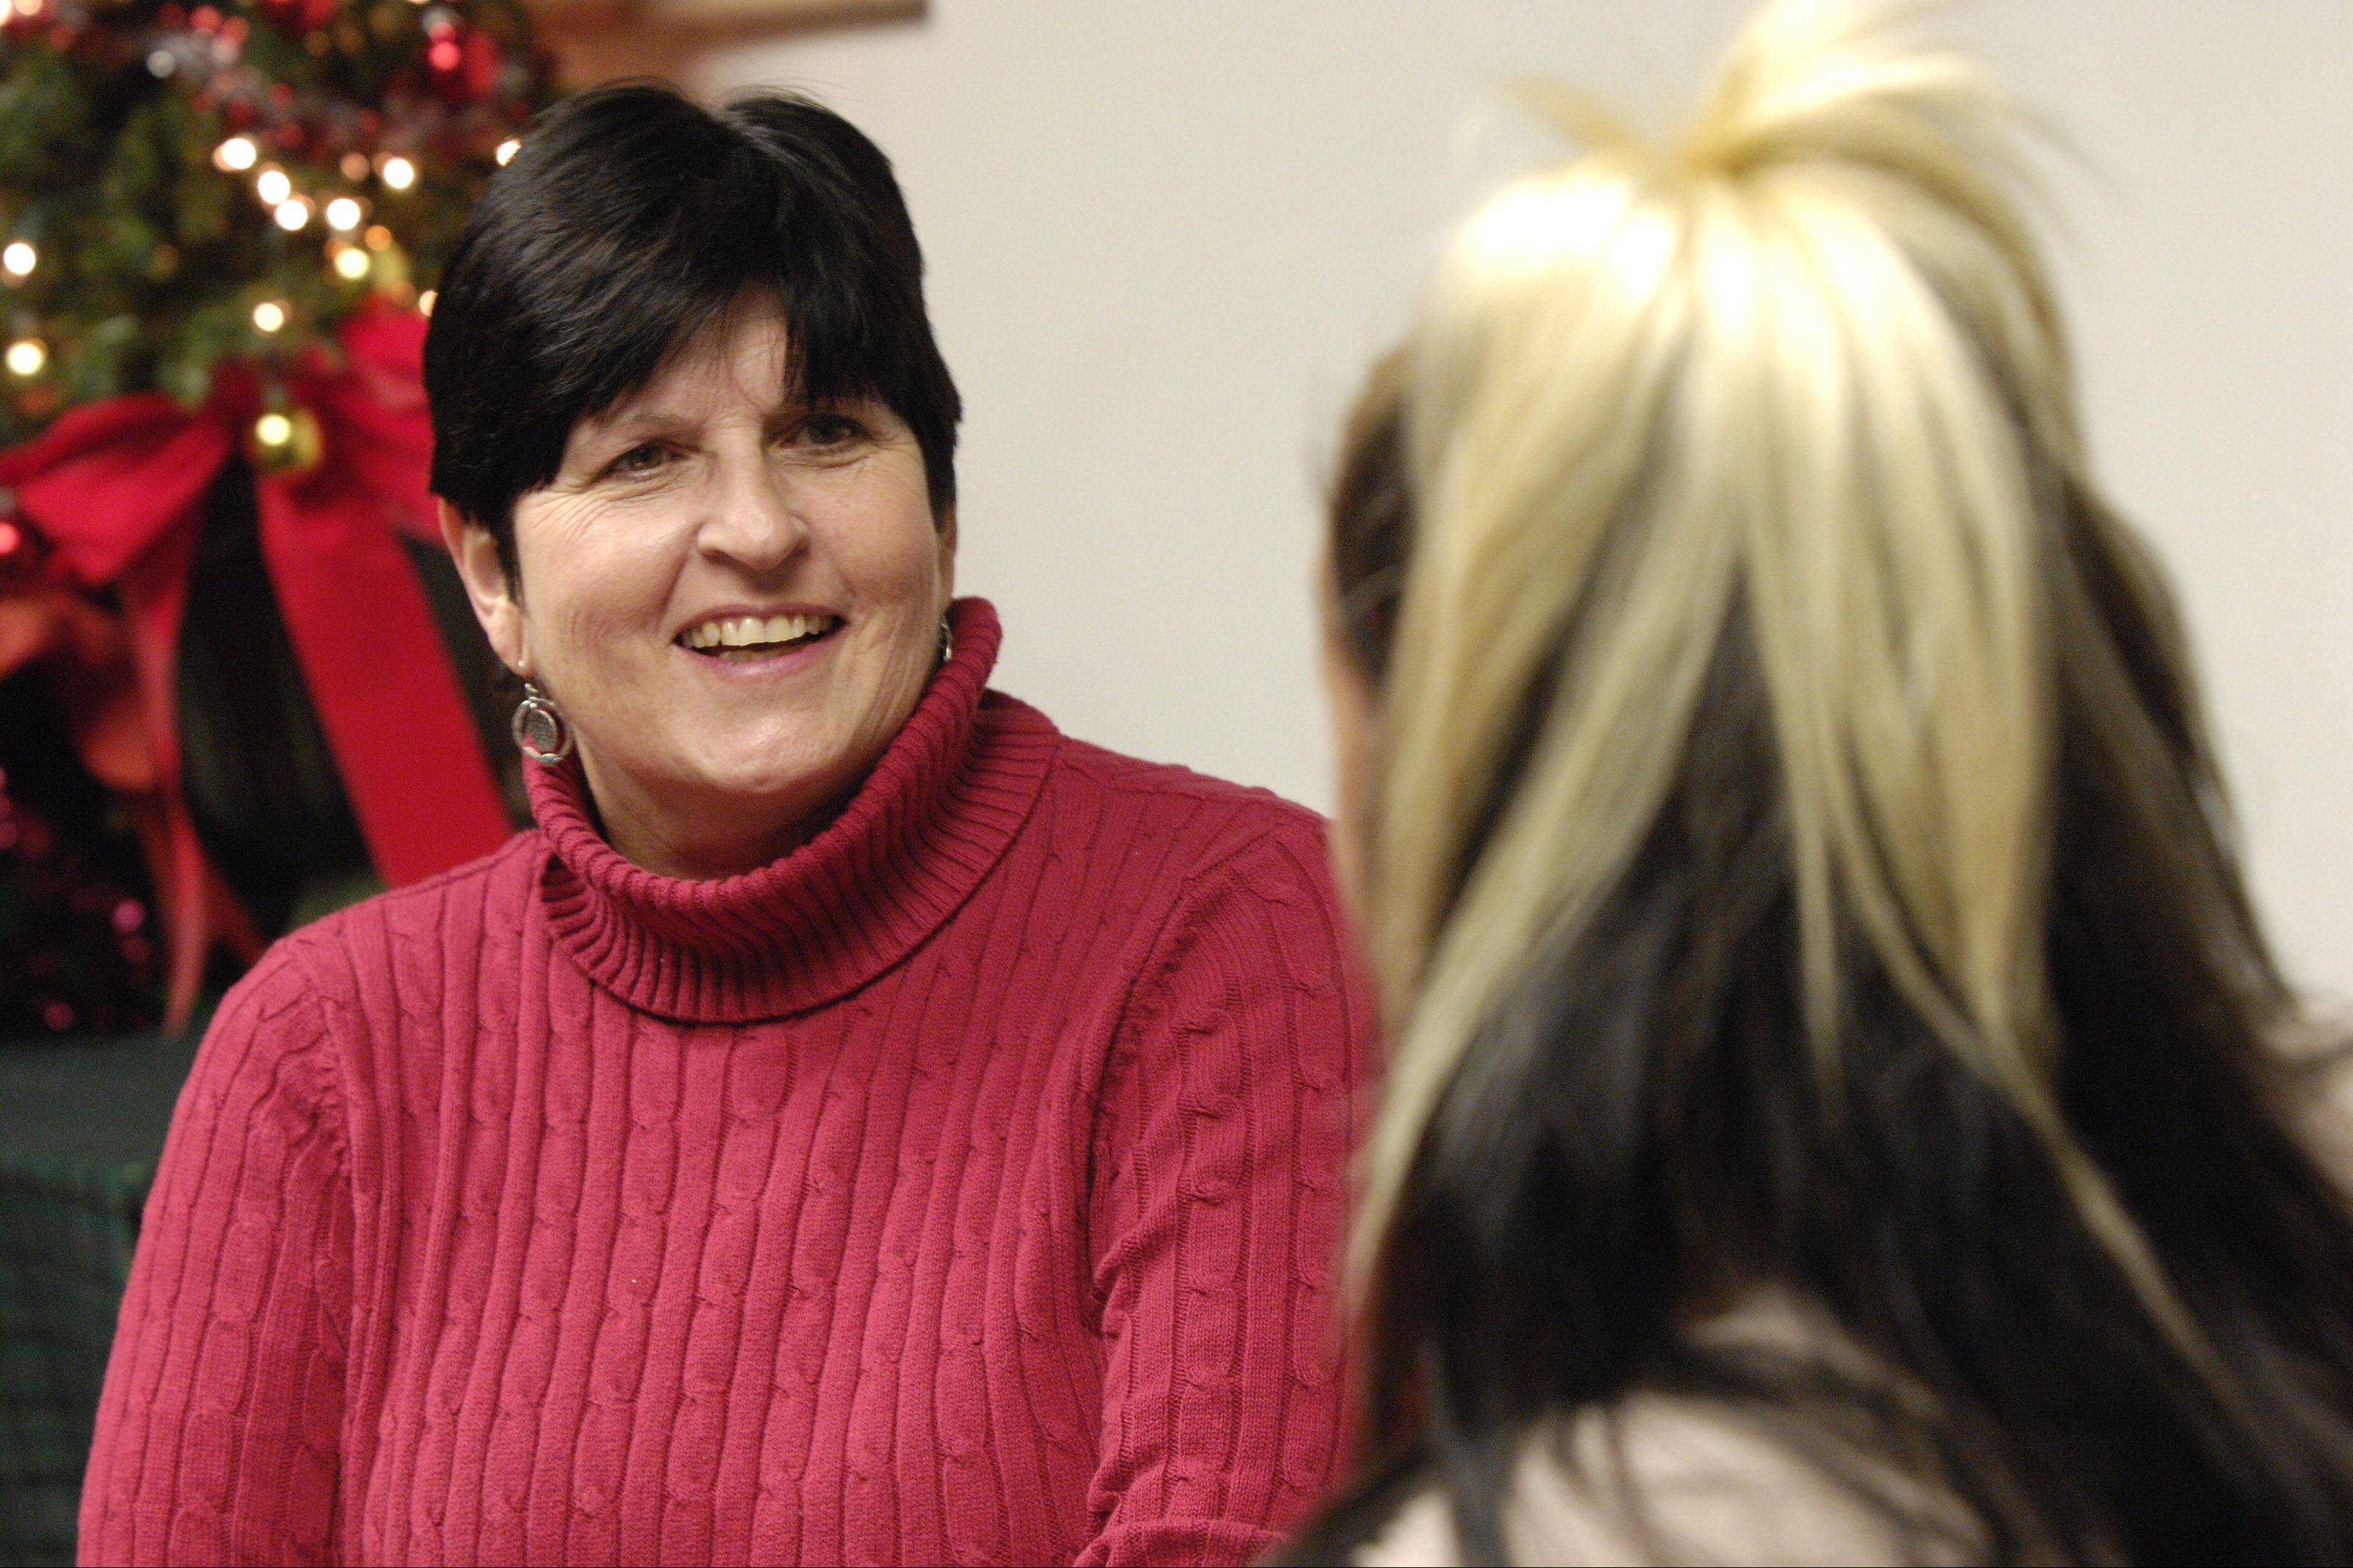 Serenity House counselor and Recovery Home Program Manager Donna Foyle talks with a resident and recovering heroin addict at the Addison facility. Serenity House helps people restart their lives after battling drug addiction.